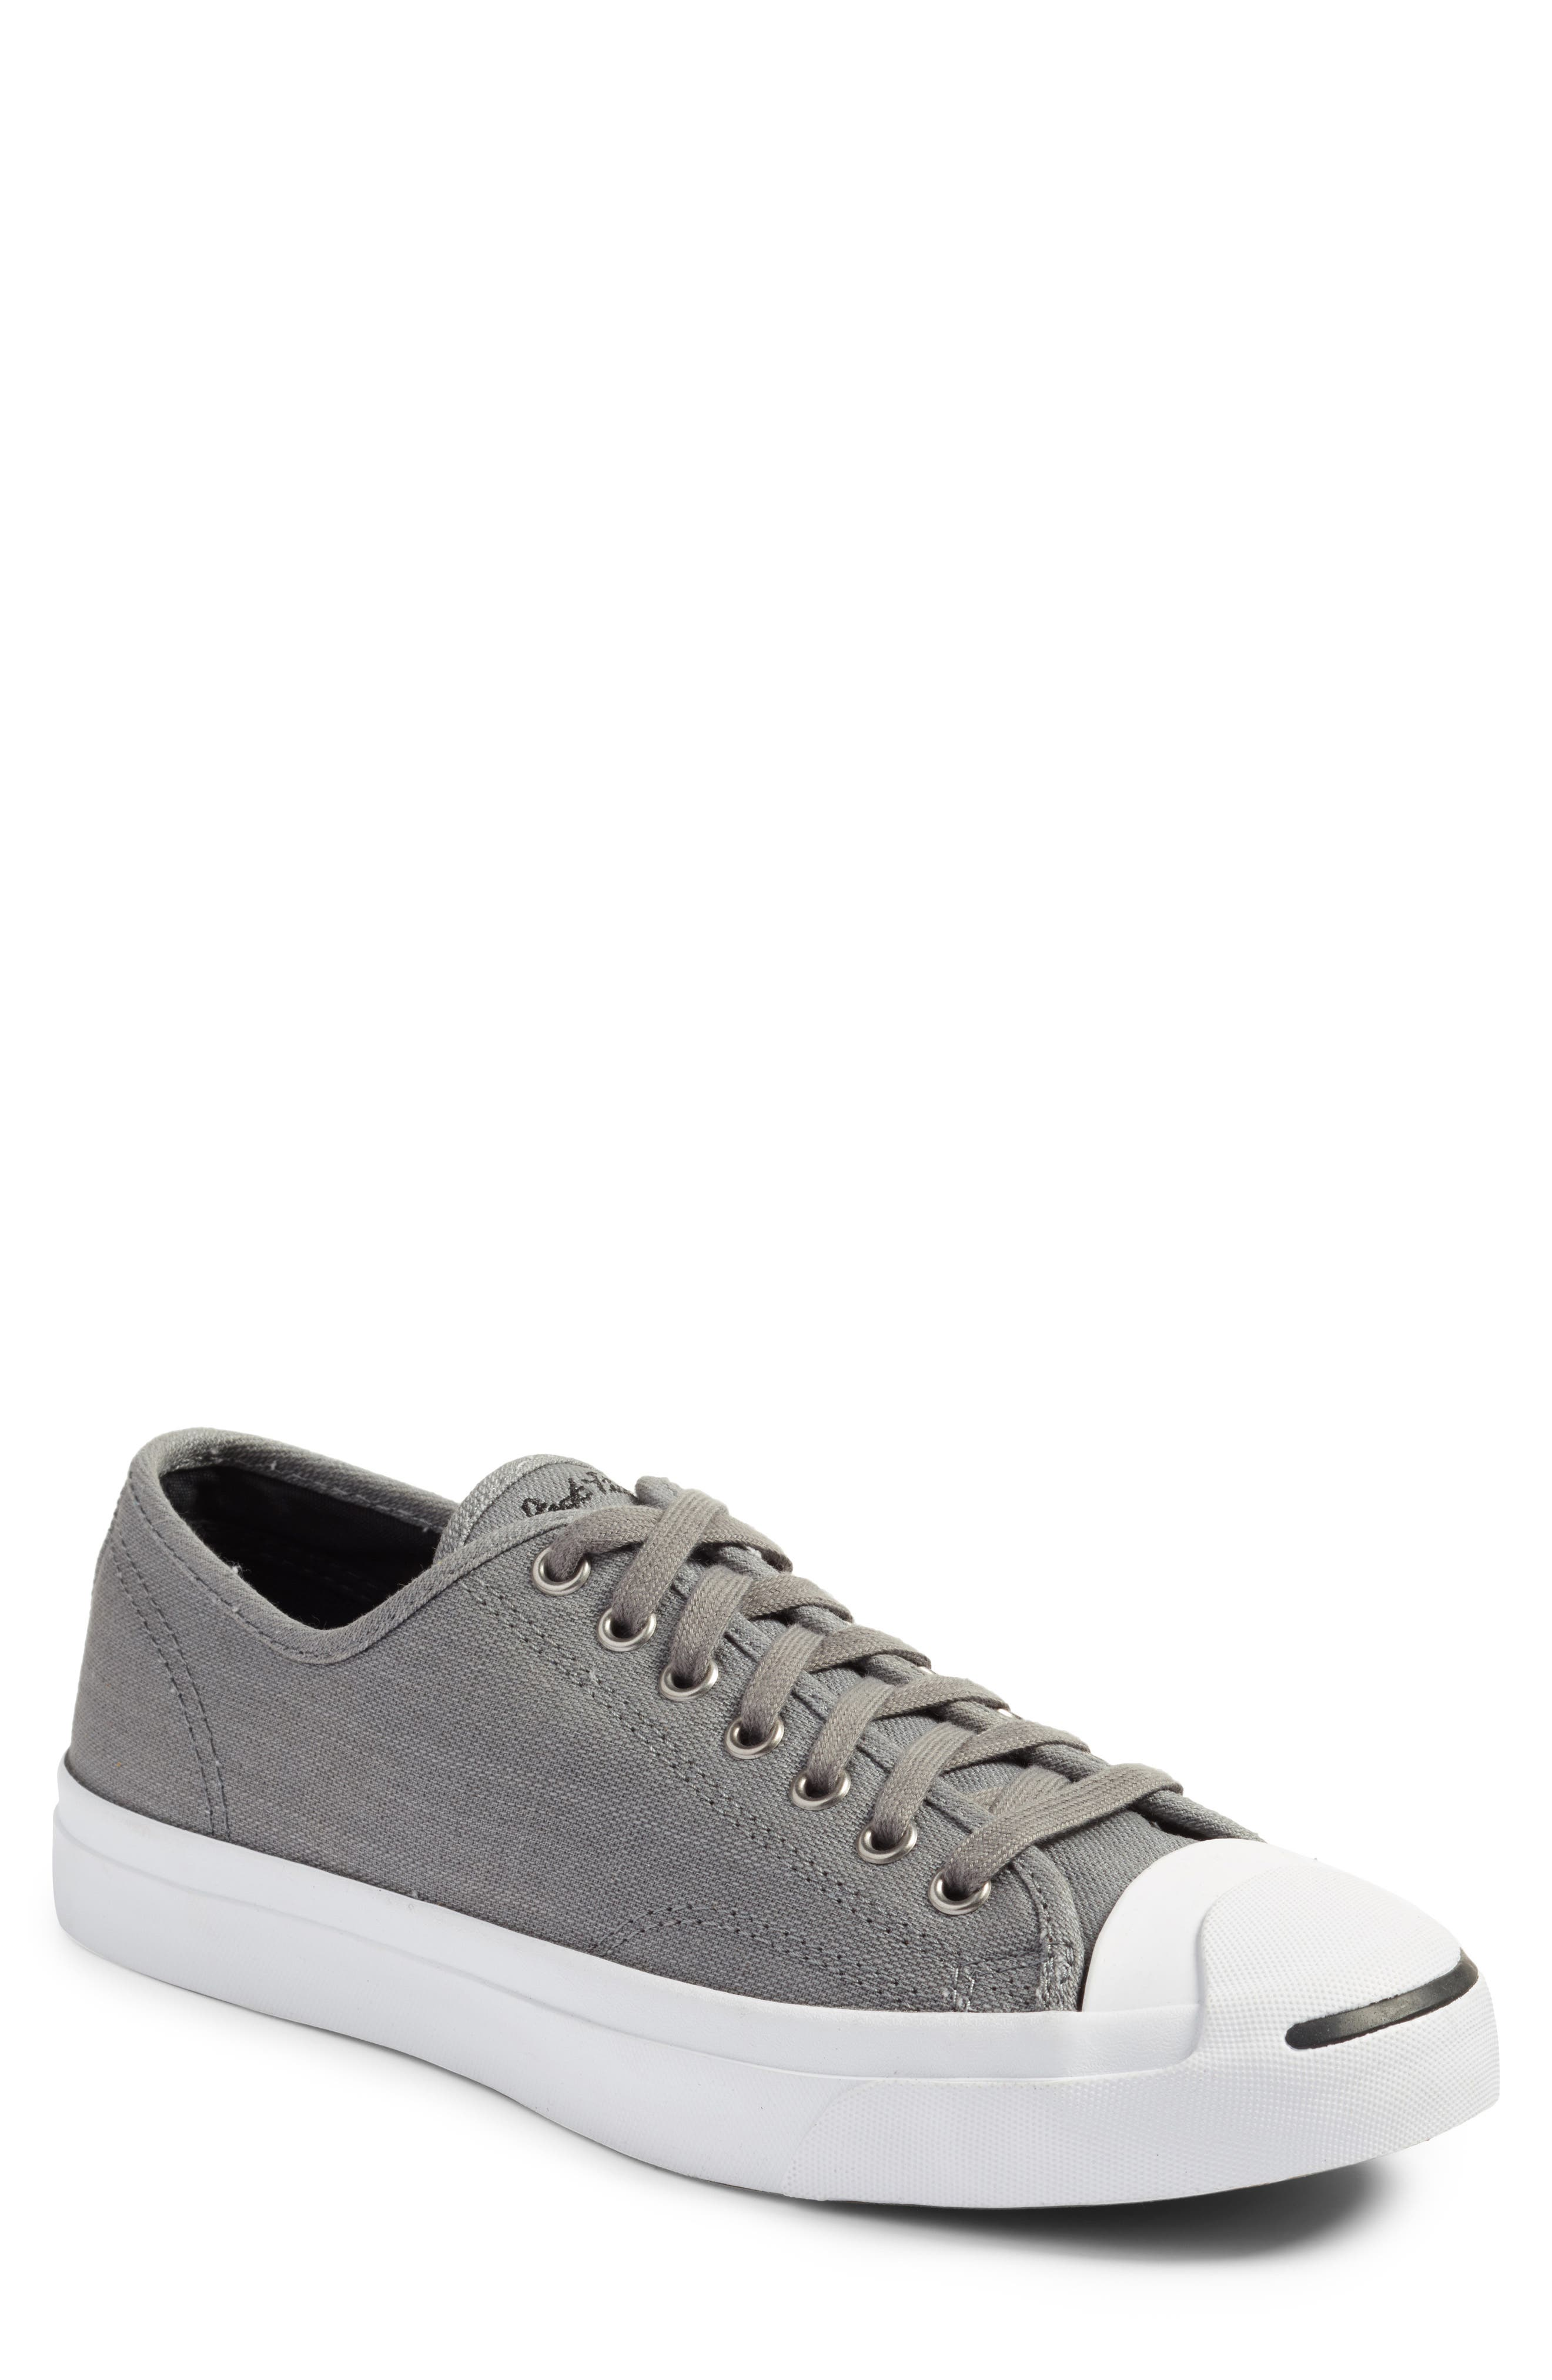 Jack Purcell Ox Sneaker,                             Main thumbnail 1, color,                             Mason Grey/ White